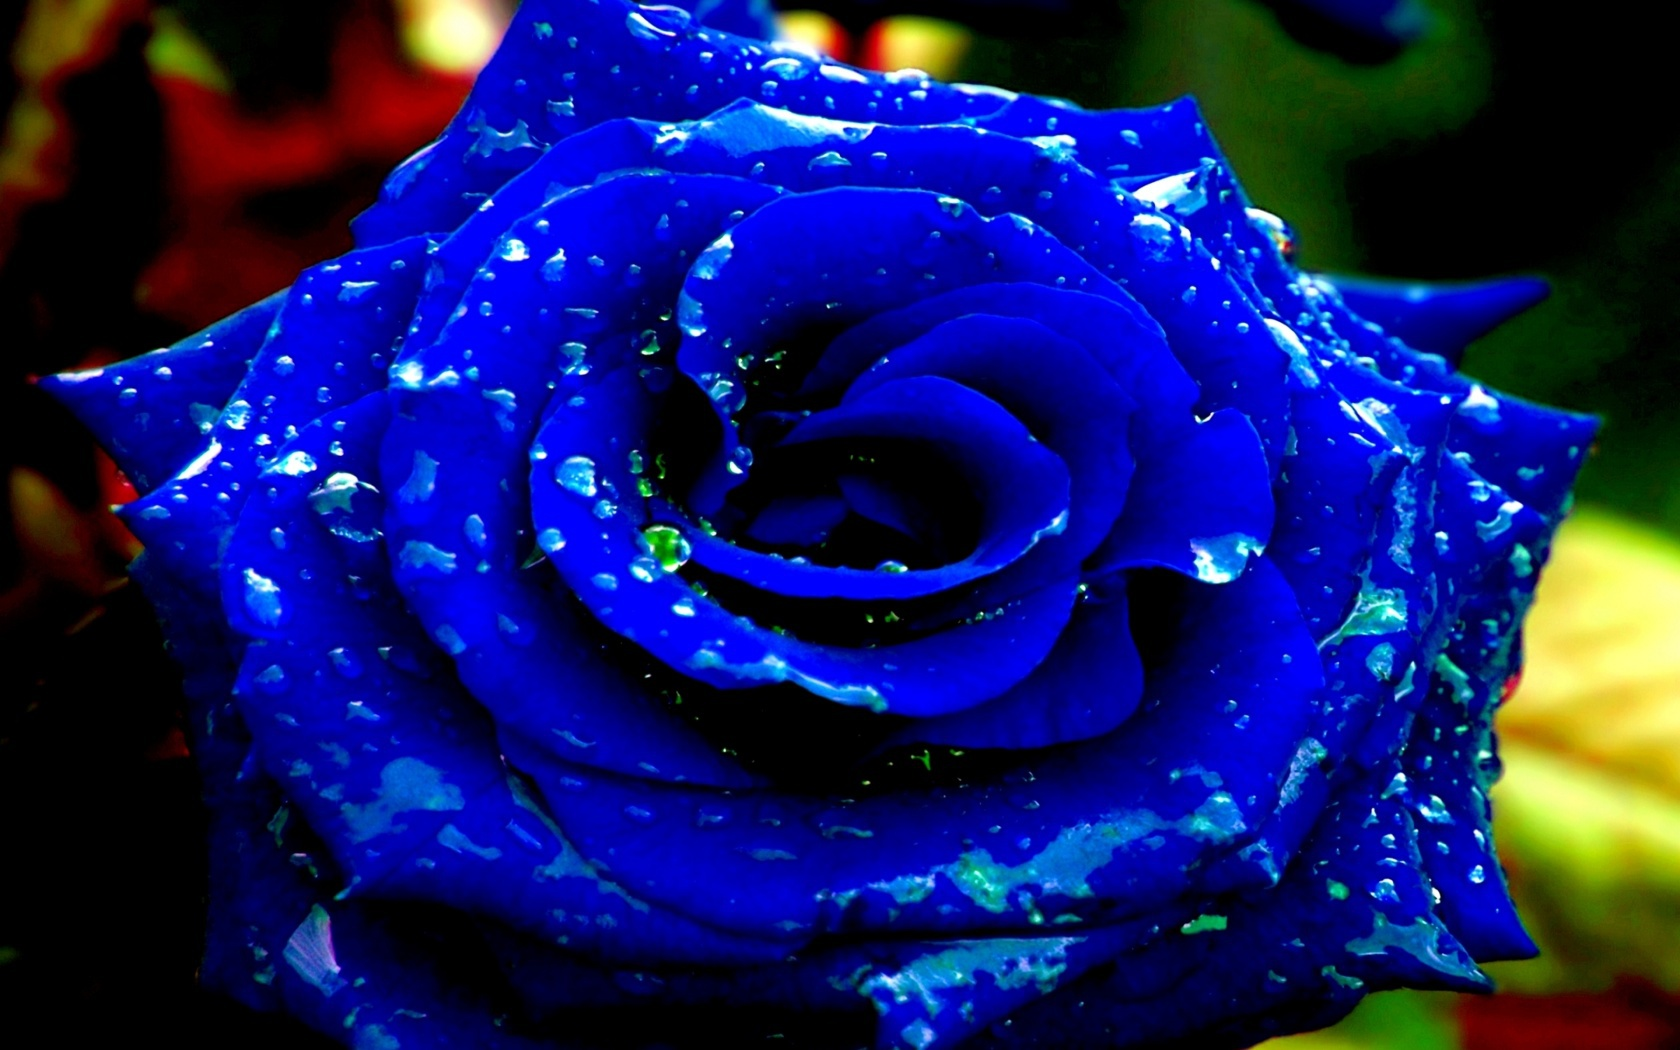 blue rose wallpapers images photos pictures backgrounds. Black Bedroom Furniture Sets. Home Design Ideas